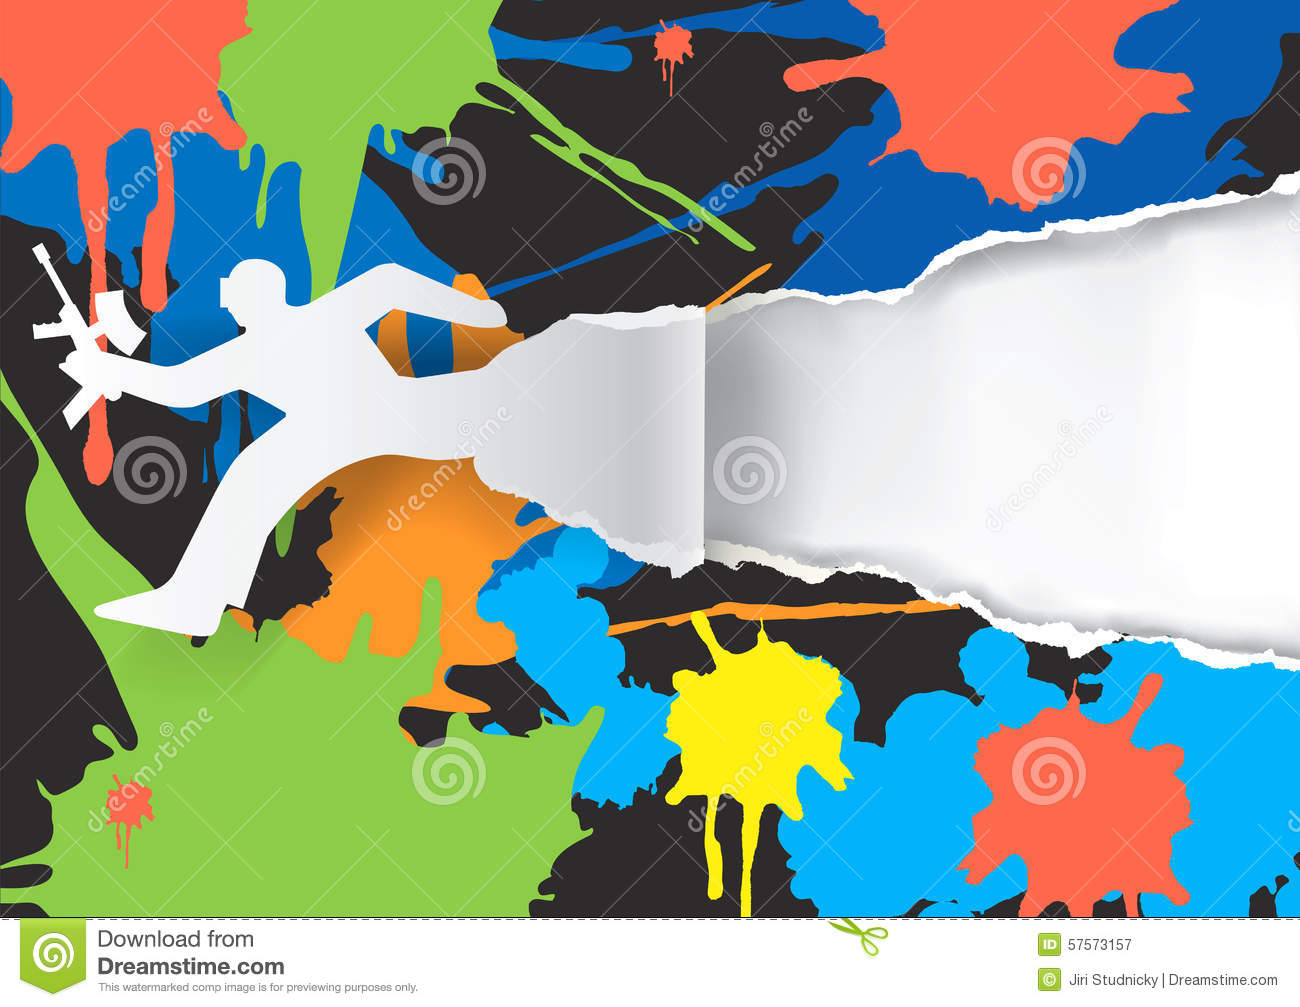 Paintball background stock vector. Illustration of activity - 57573157